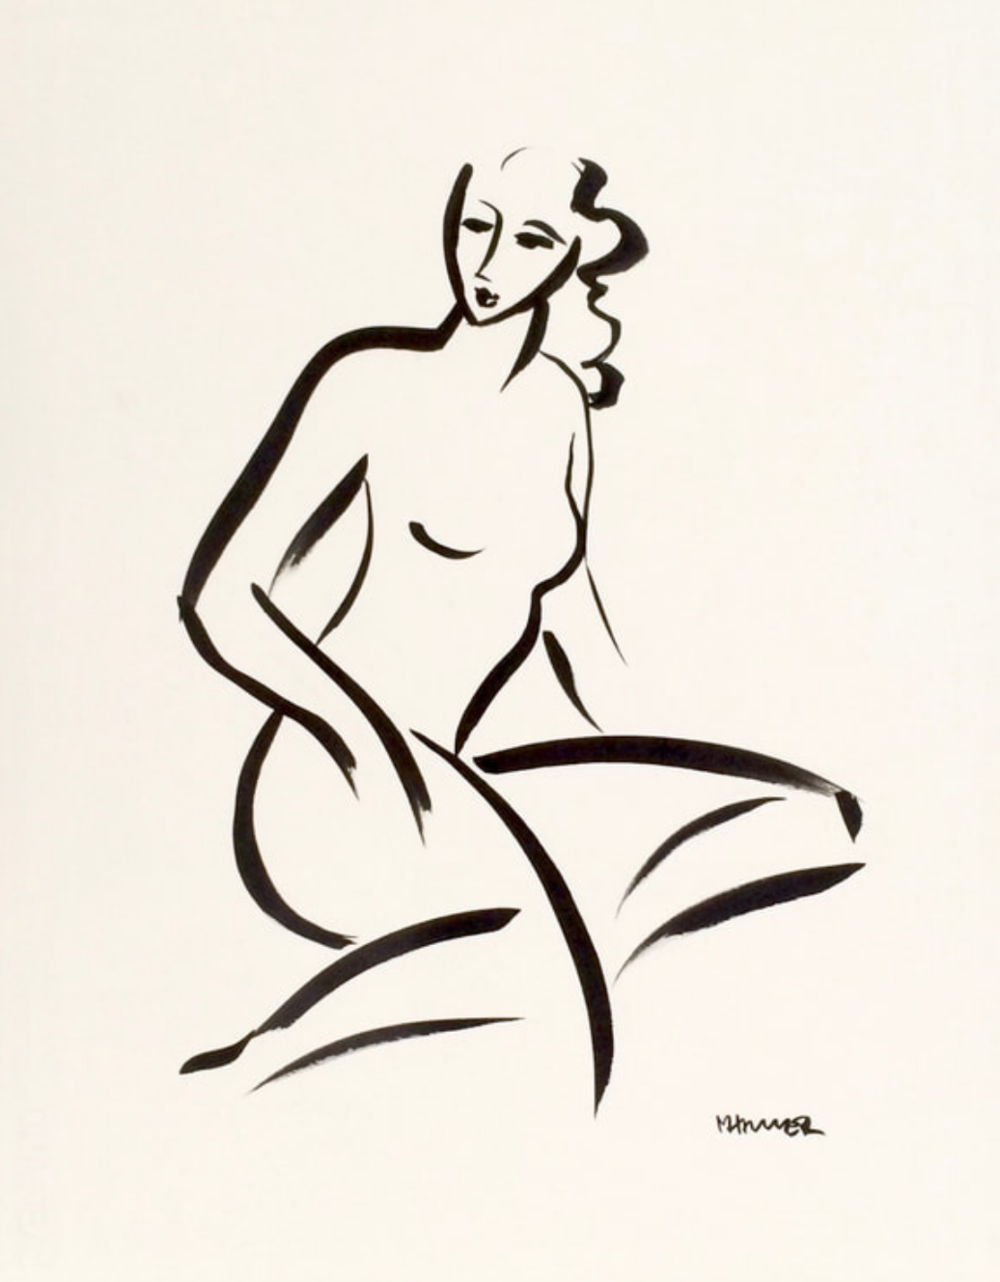 22 x 16 Nude Ink #1362